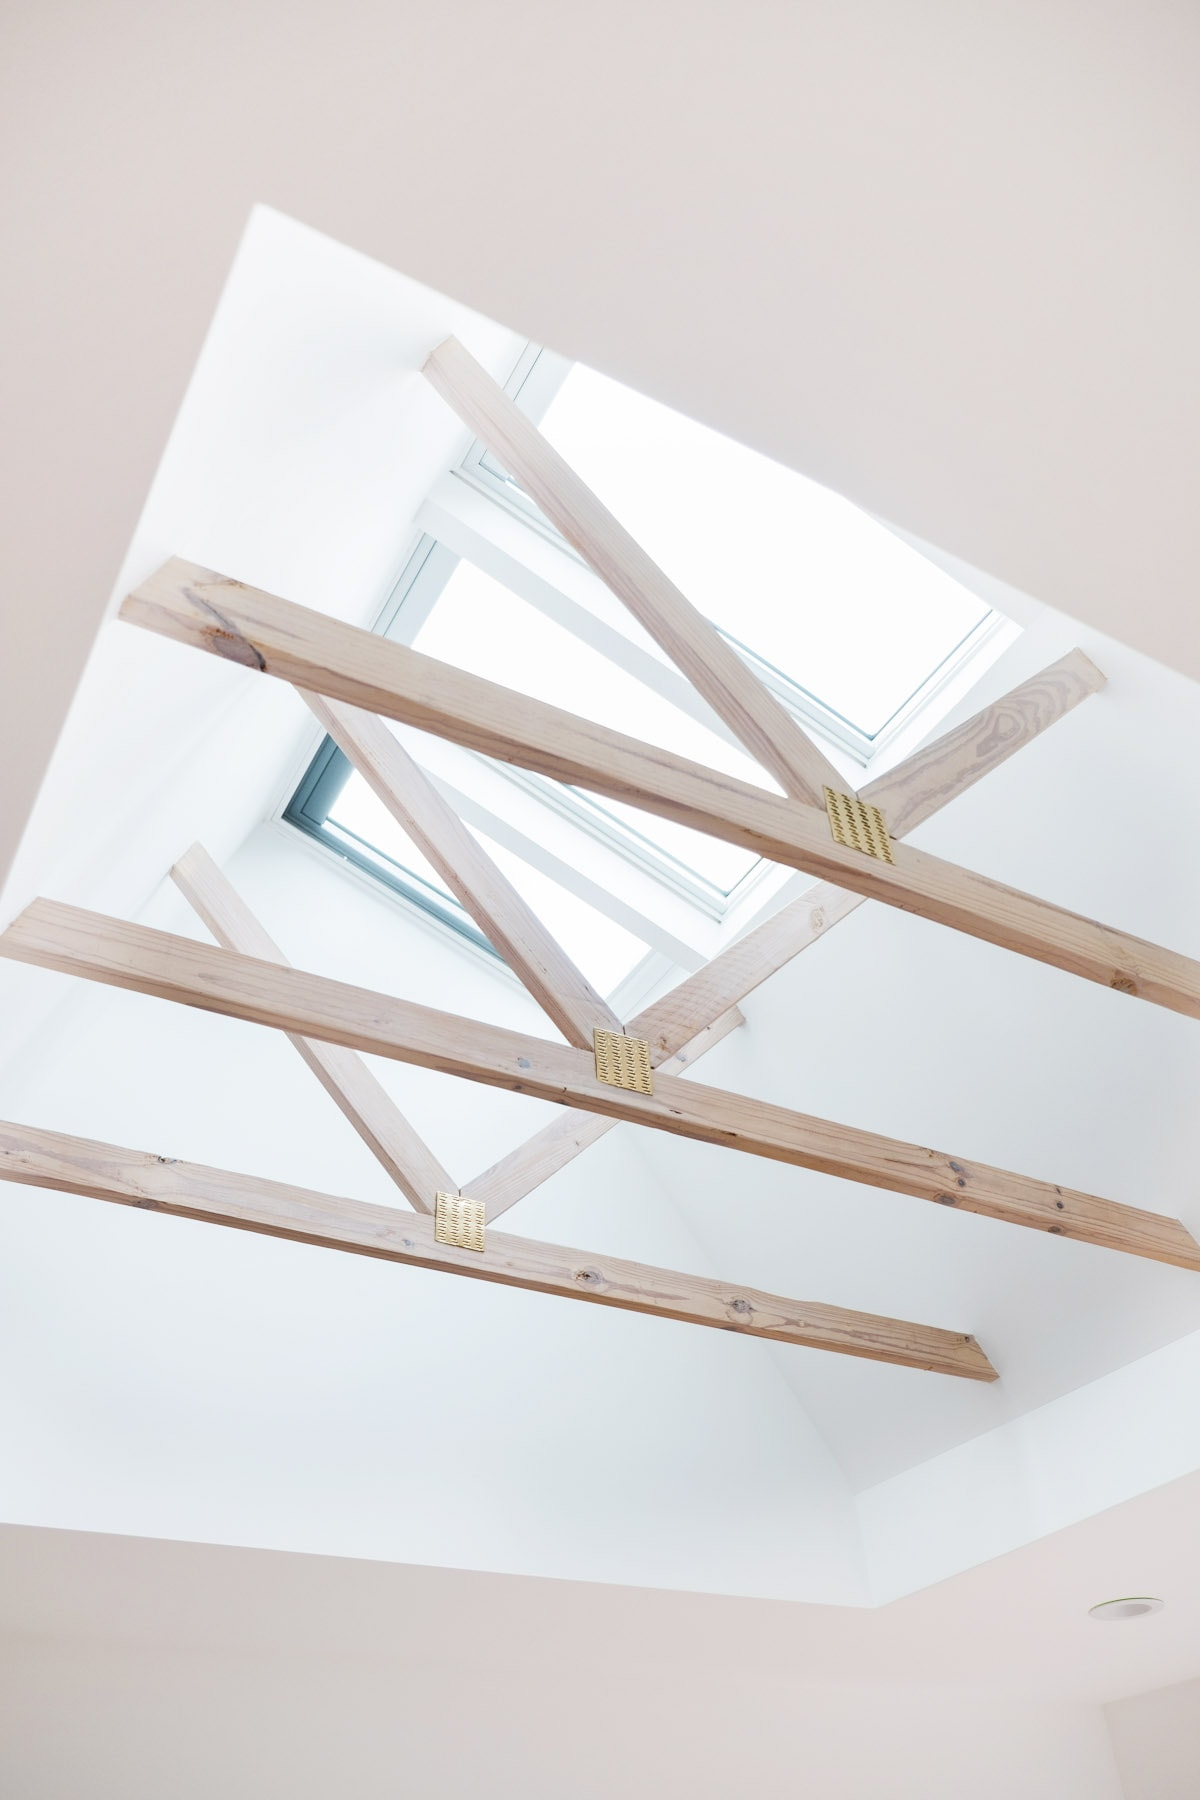 The whitewashed beams in the master bedroom - Sugar & Cloth Casa: Before & After of Installing Skylights in The New House